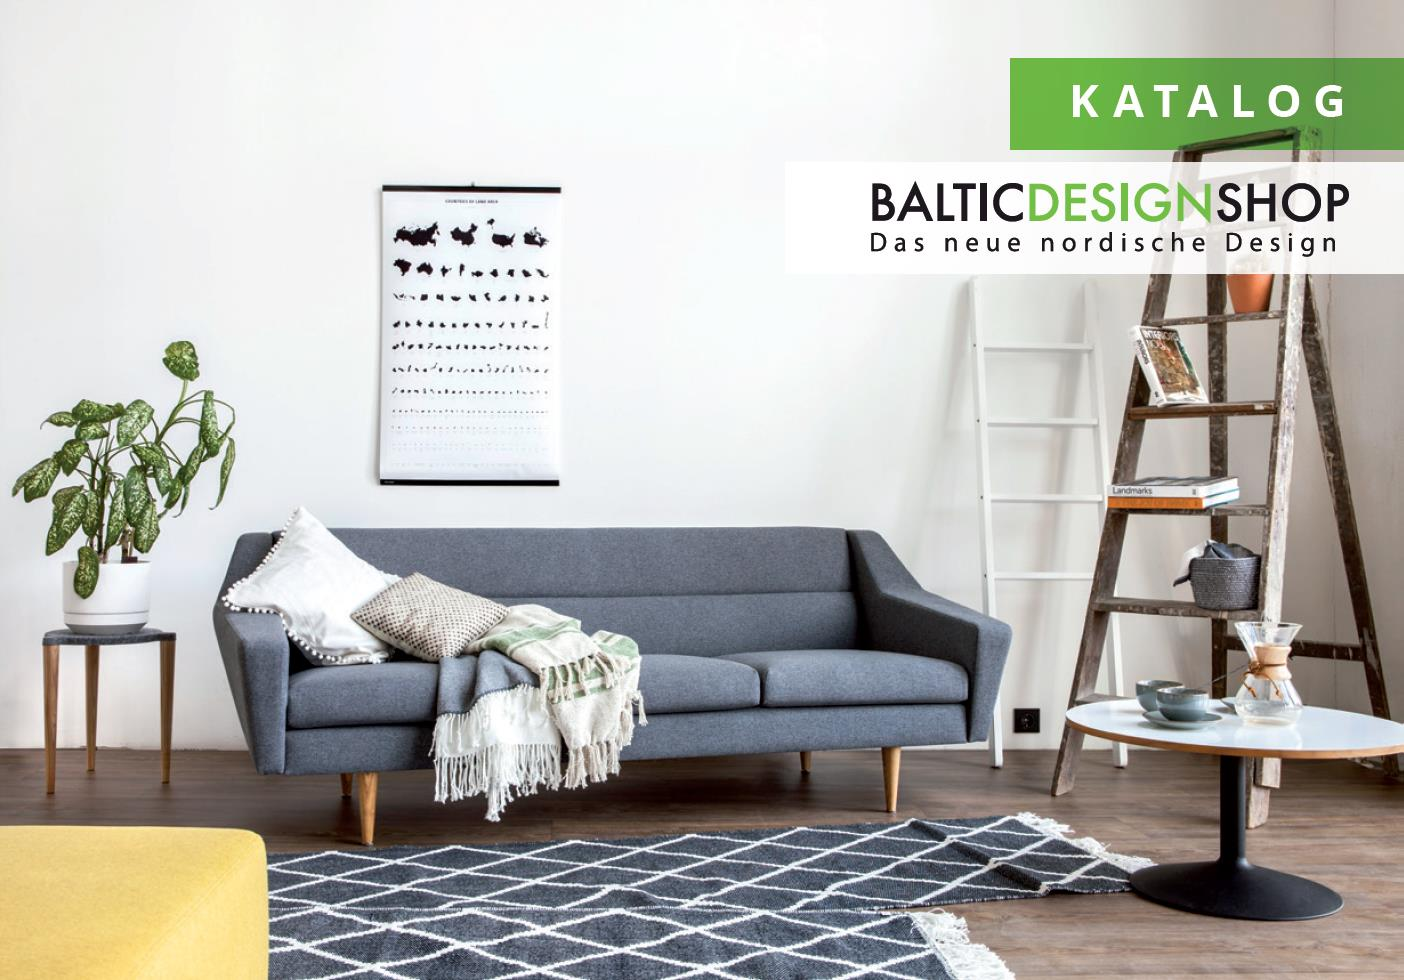 Katalog Baltic Design Shop